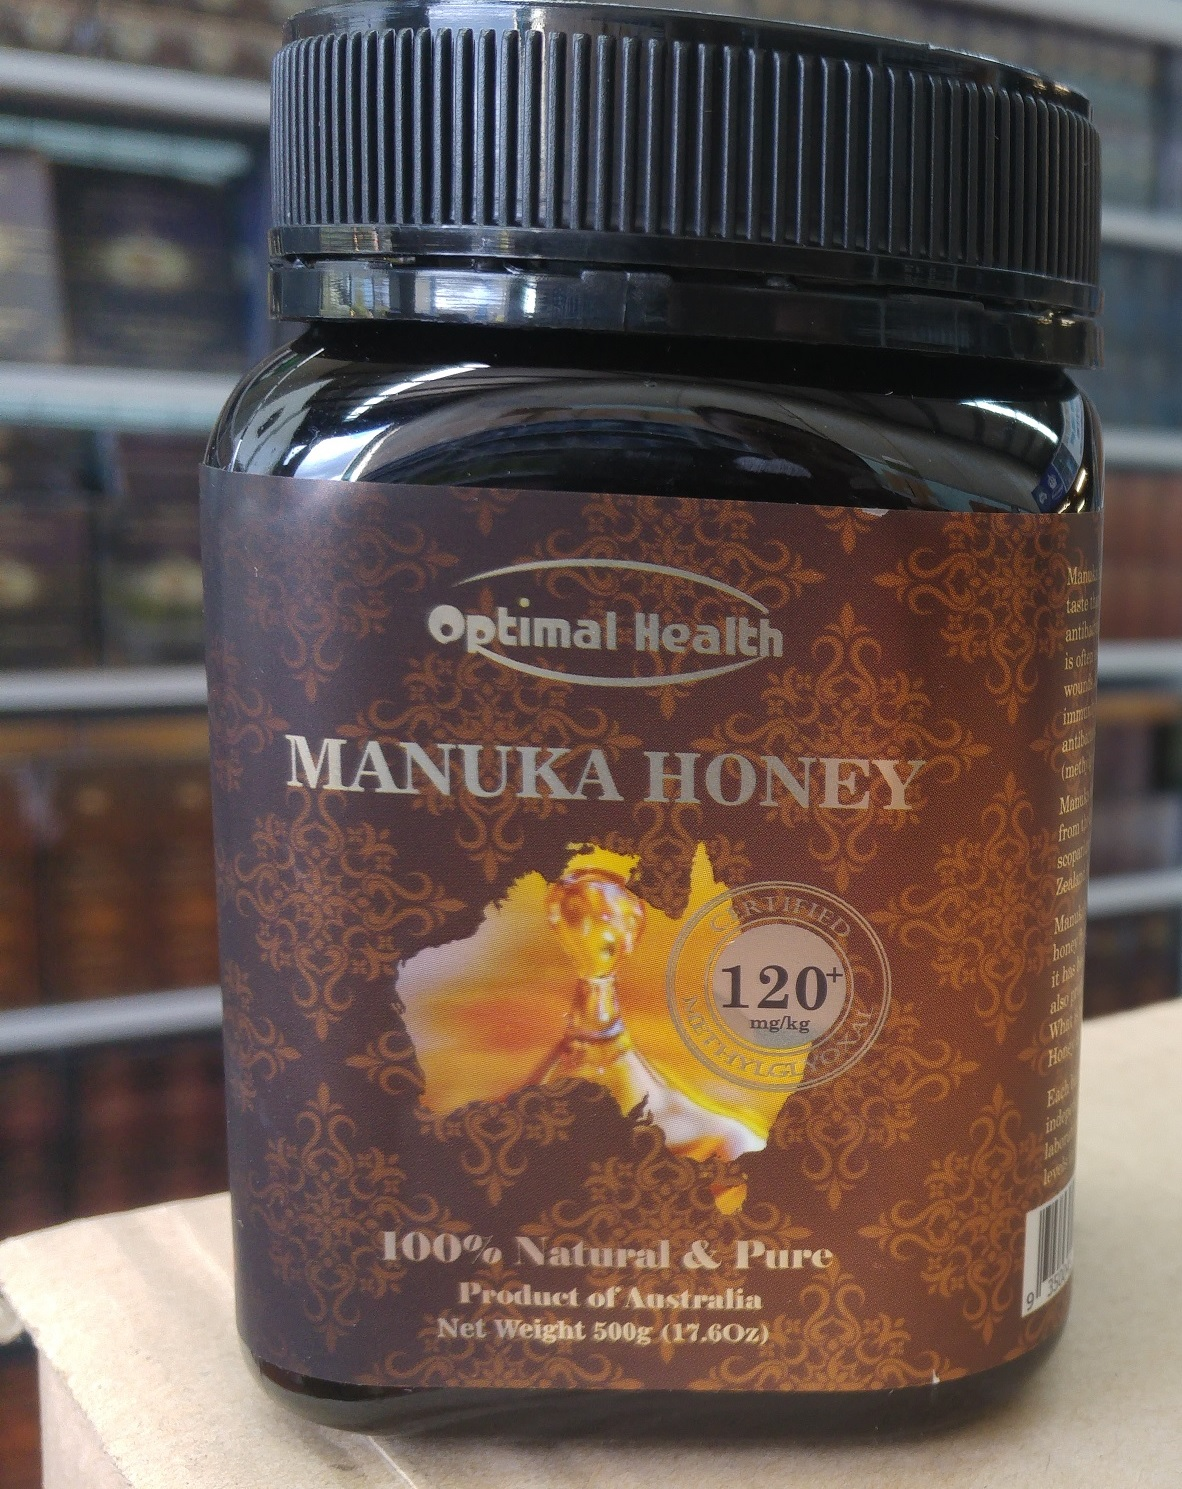 Optimal health manuka honey